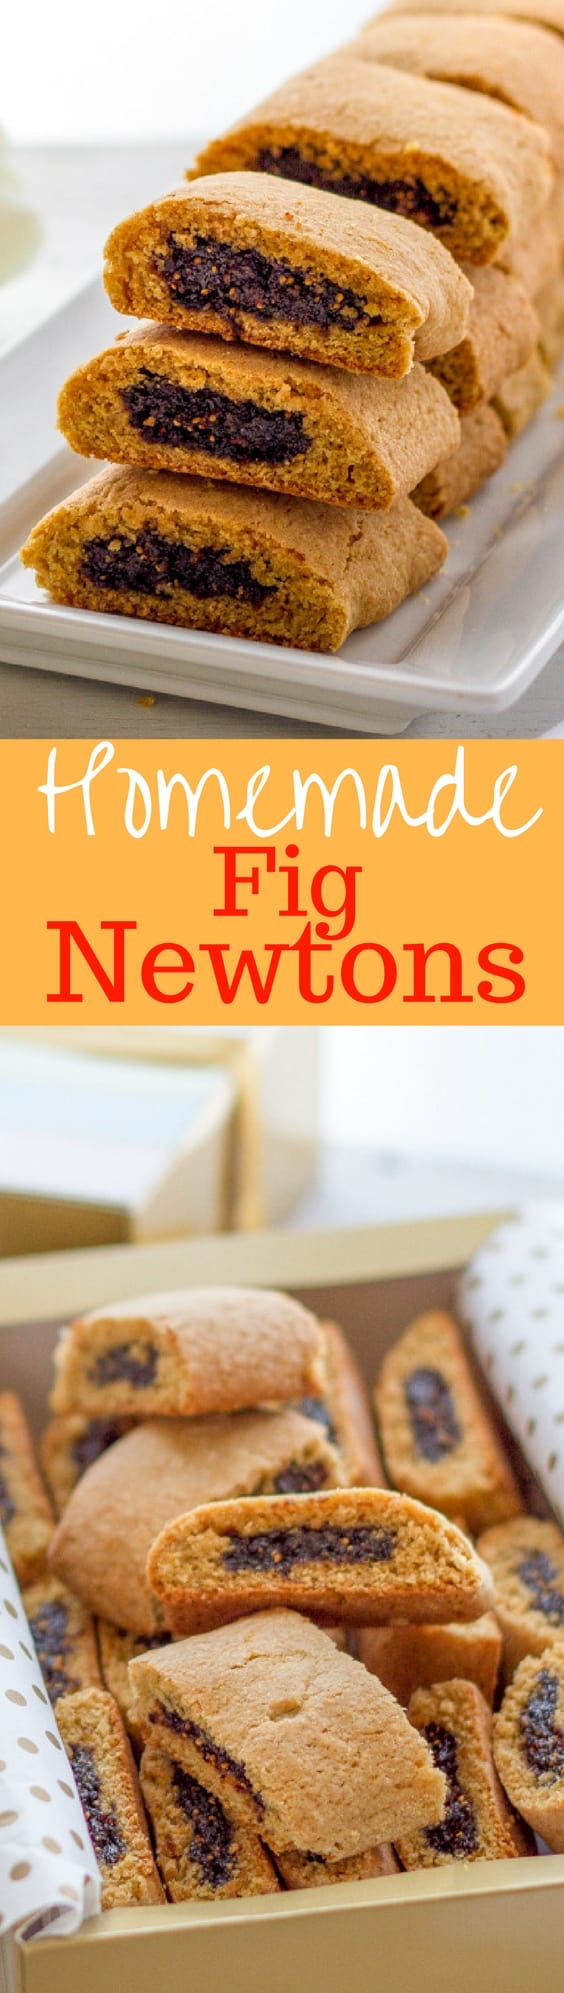 Homemade Fig Newtons - so much better when they are homemade!